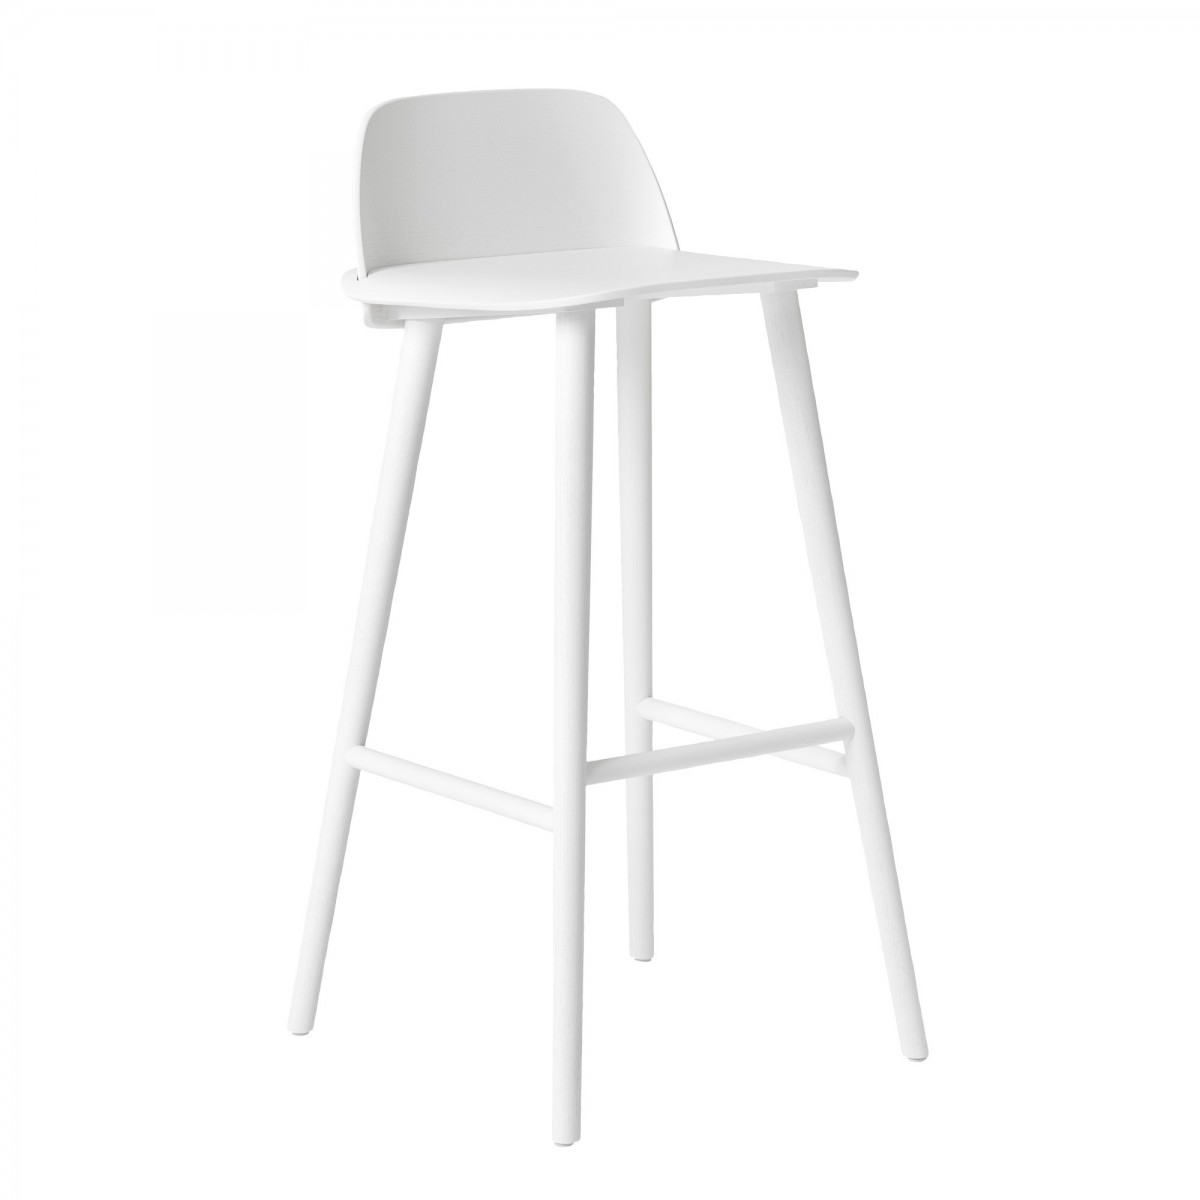 tabouret haut nerd blanc en ch ne teint muuto. Black Bedroom Furniture Sets. Home Design Ideas